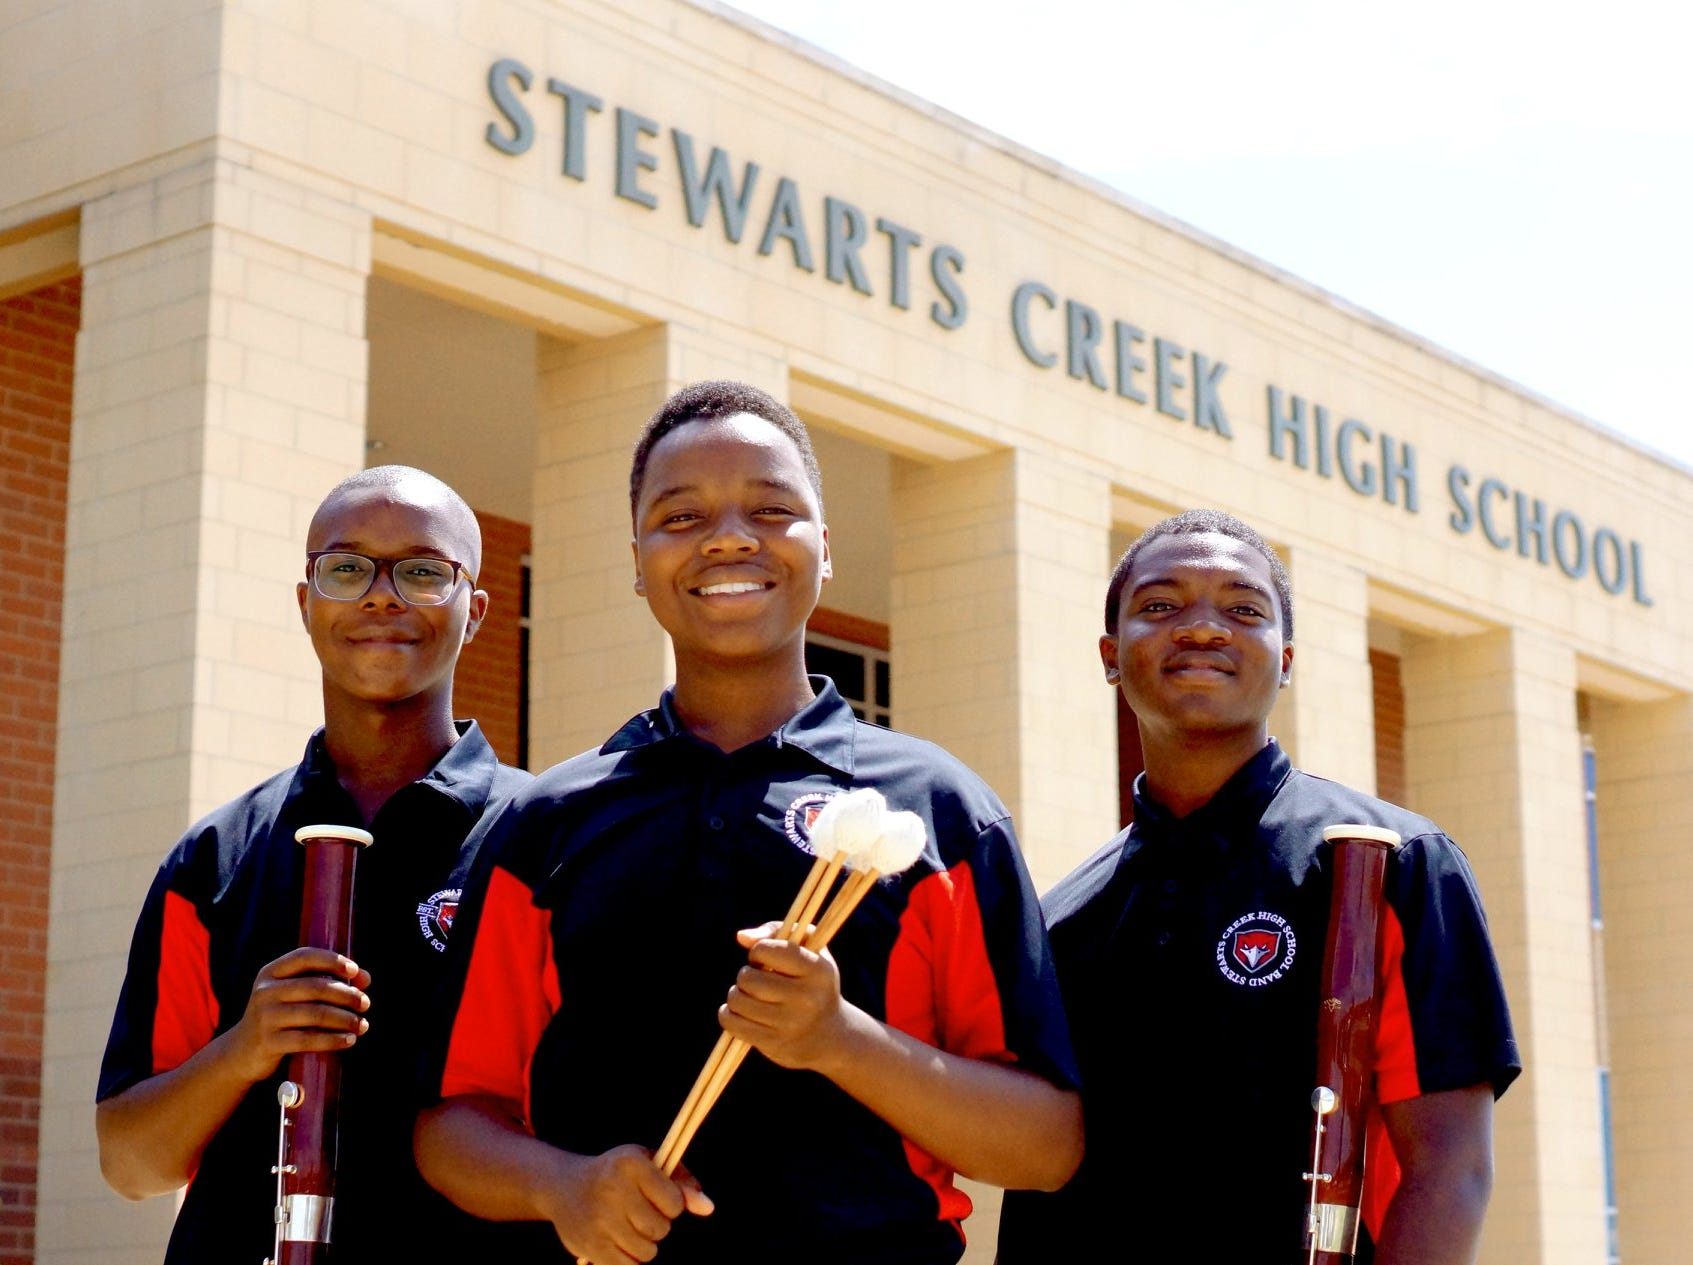 Stewarts Creek High musicians Xayvion Davidson, Xavion Patterson and Mario Shaw – were selected for the 2018–19 class of the Nashville Symphony Accelerando Initiative.